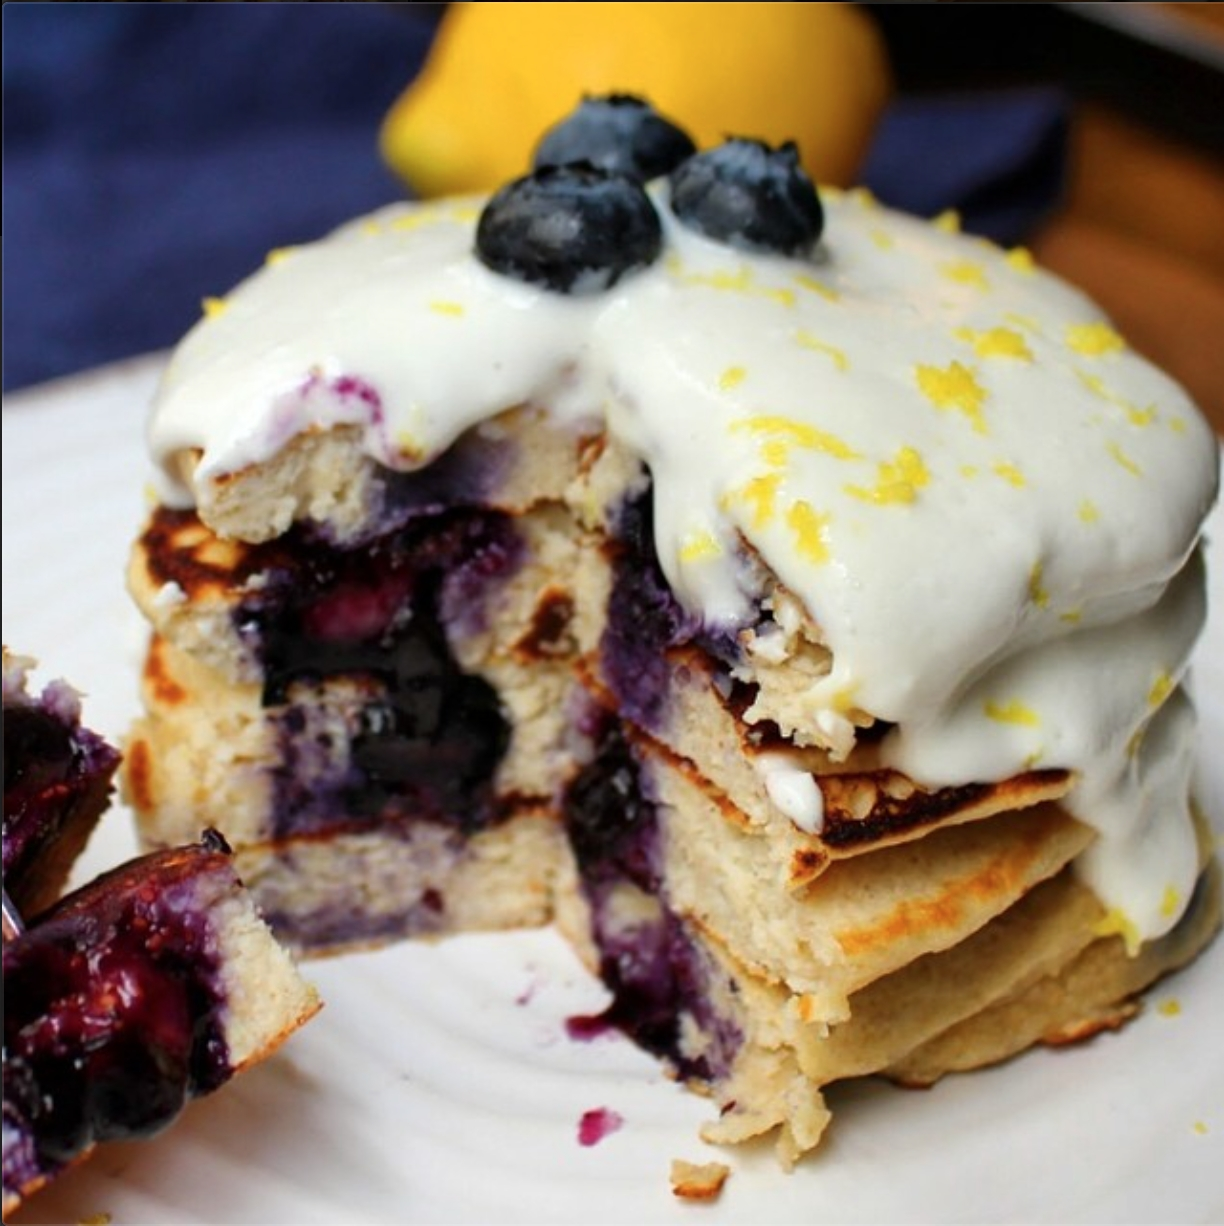 ... Recipes - Blueberry Protein Pancakes With Lemony Cream Cheese Topping